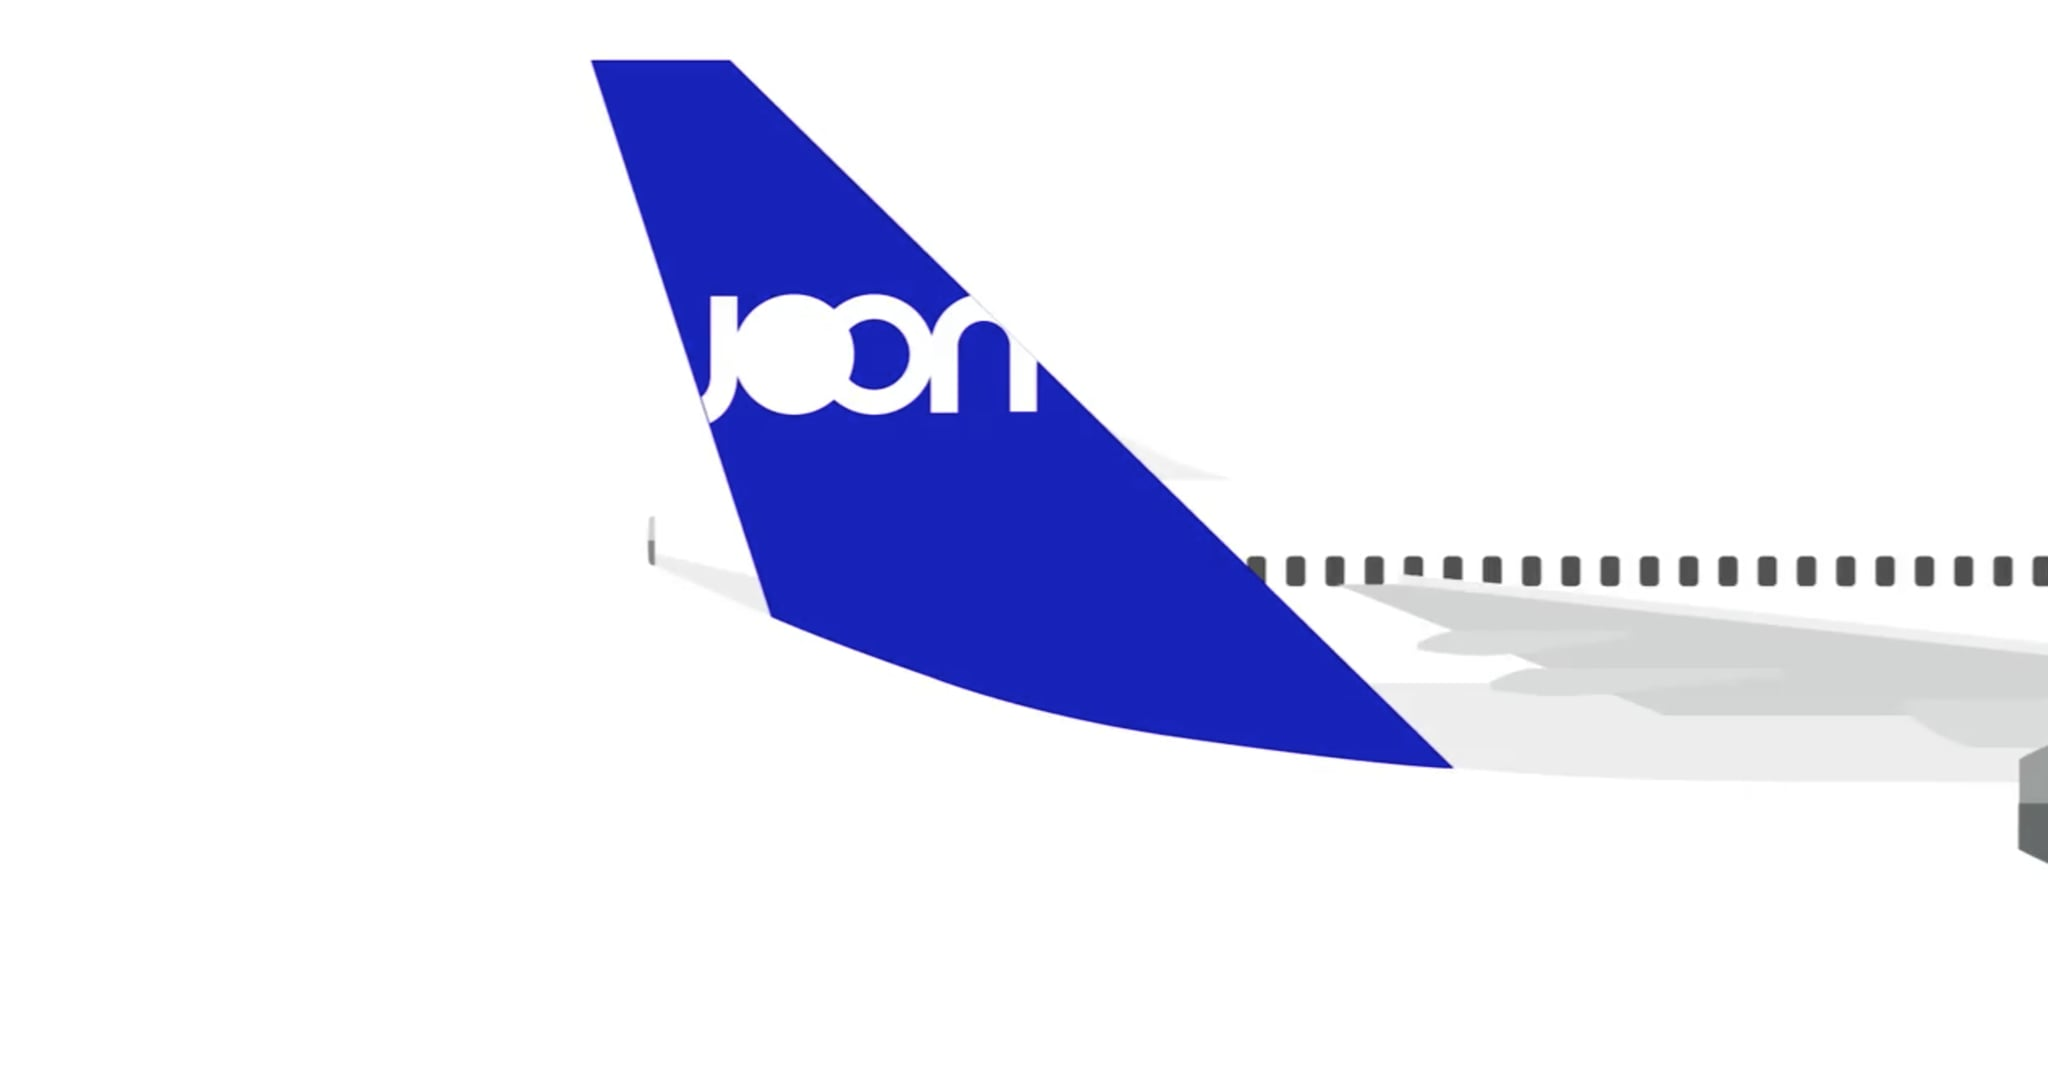 Introducing Joon, the new airline for millennials